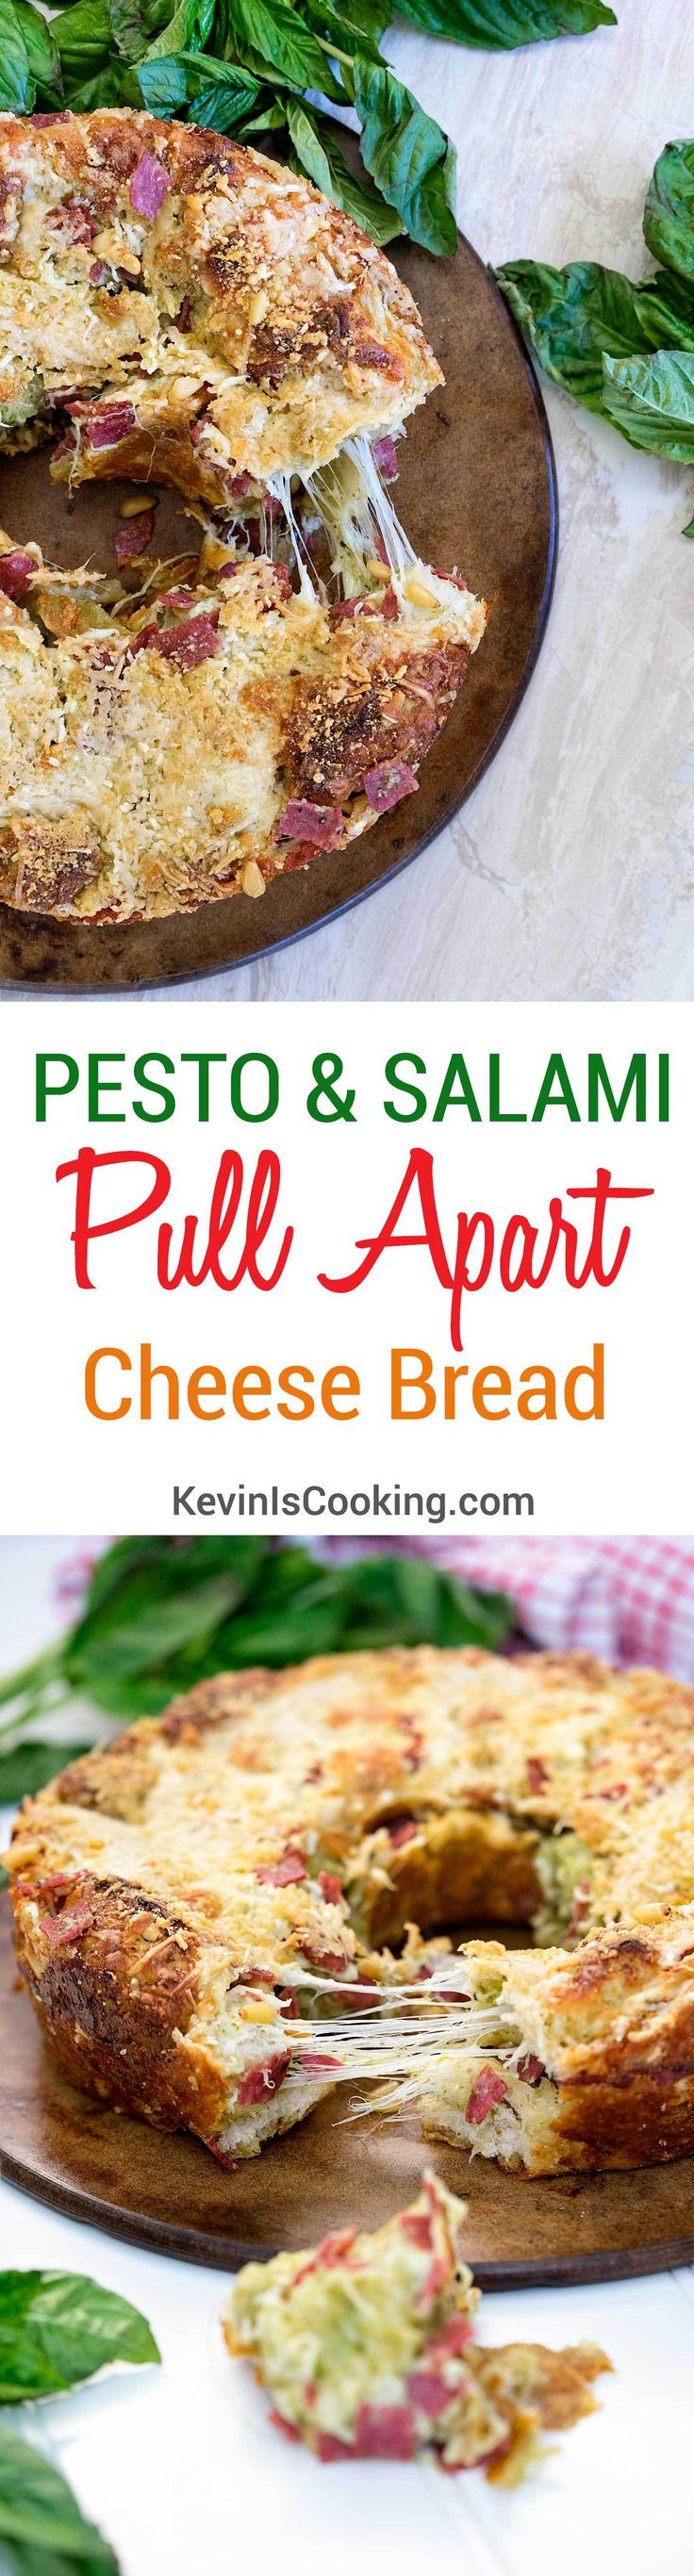 Pesto, Salami Pull Apart Cheese Bread. www.keviniscooking.com